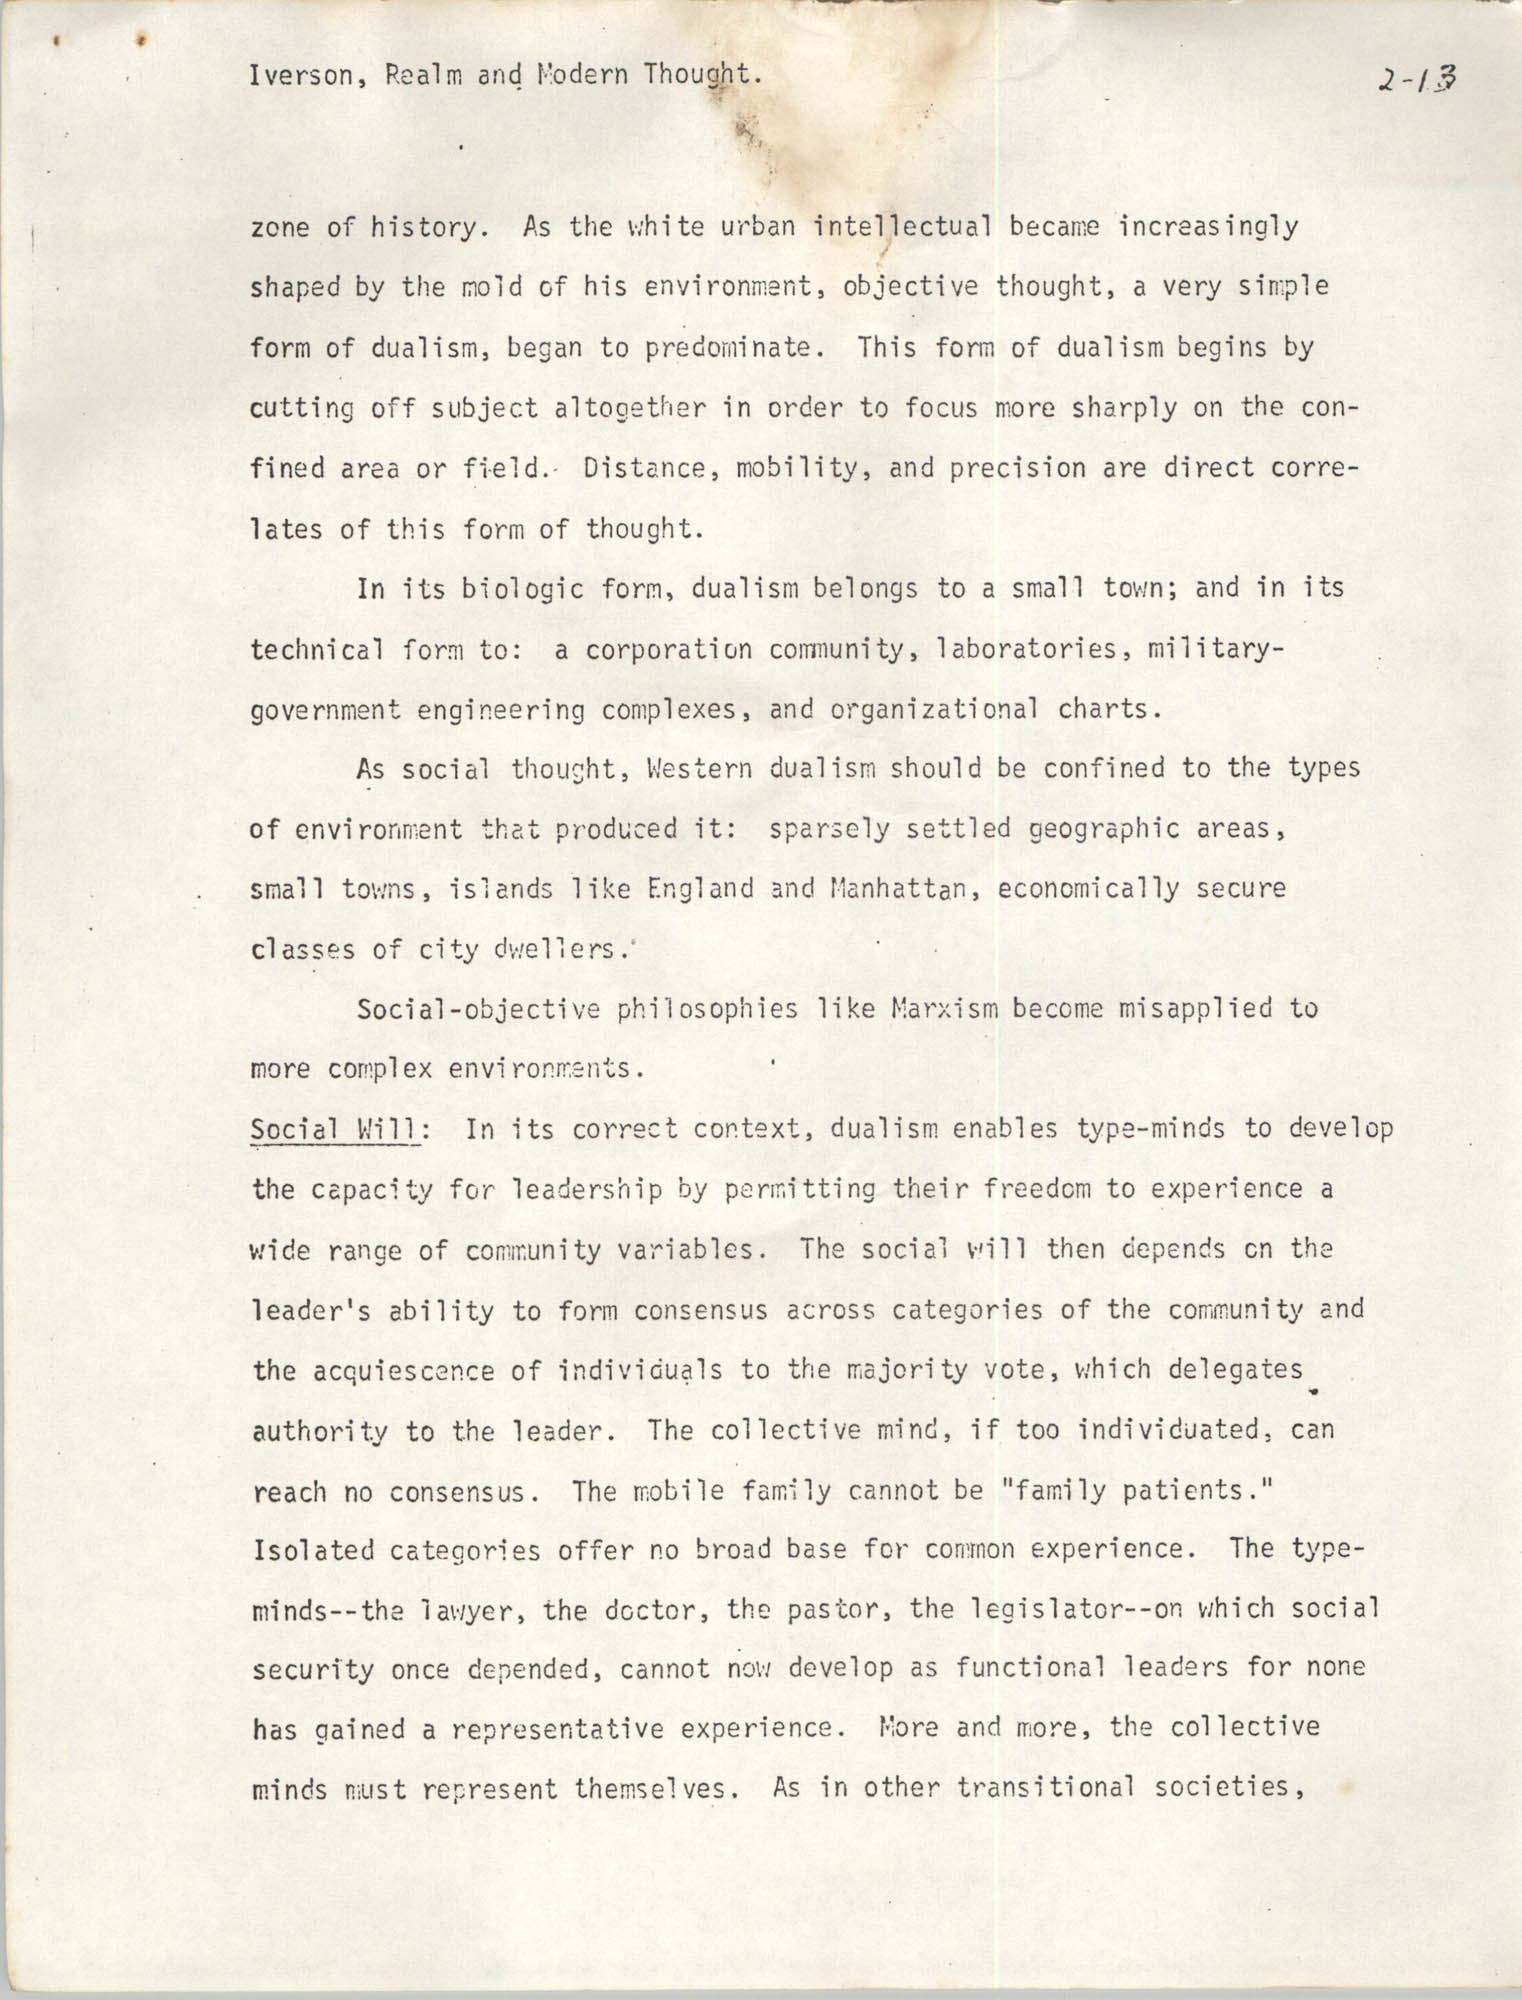 Realm and Modern Thought, Page 2-13